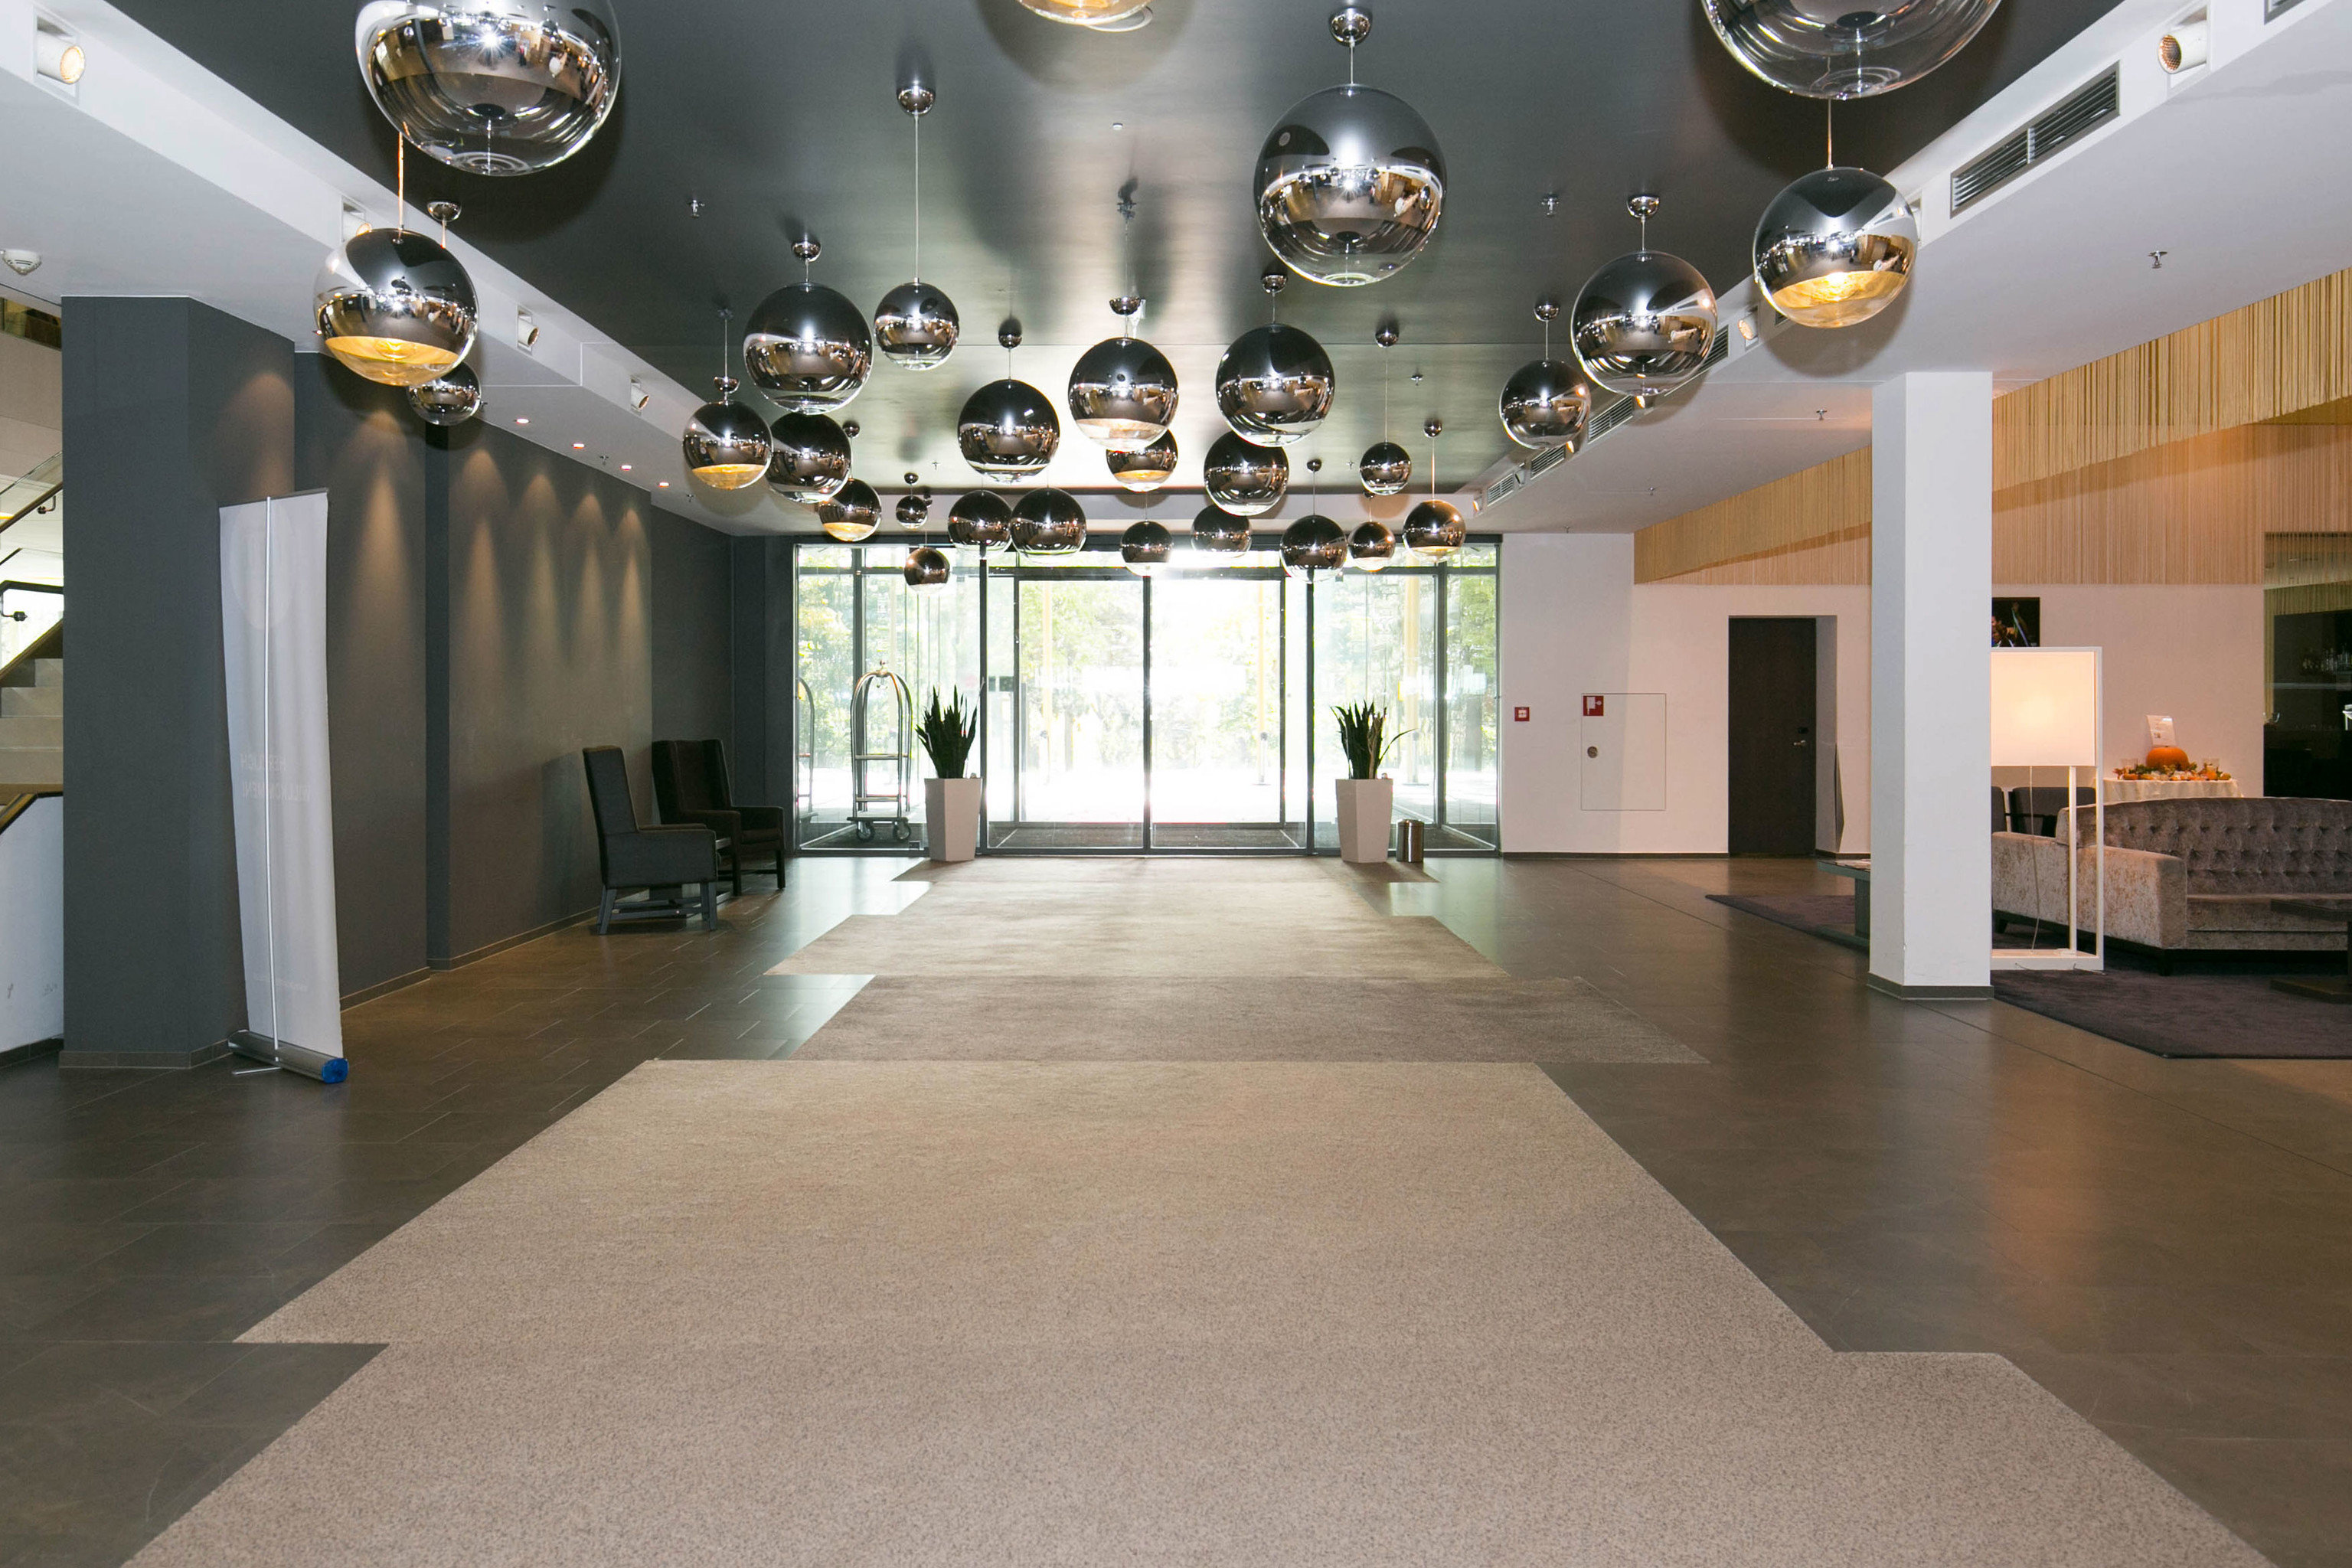 Lobby property Architecture tourist attraction hall flooring art gallery